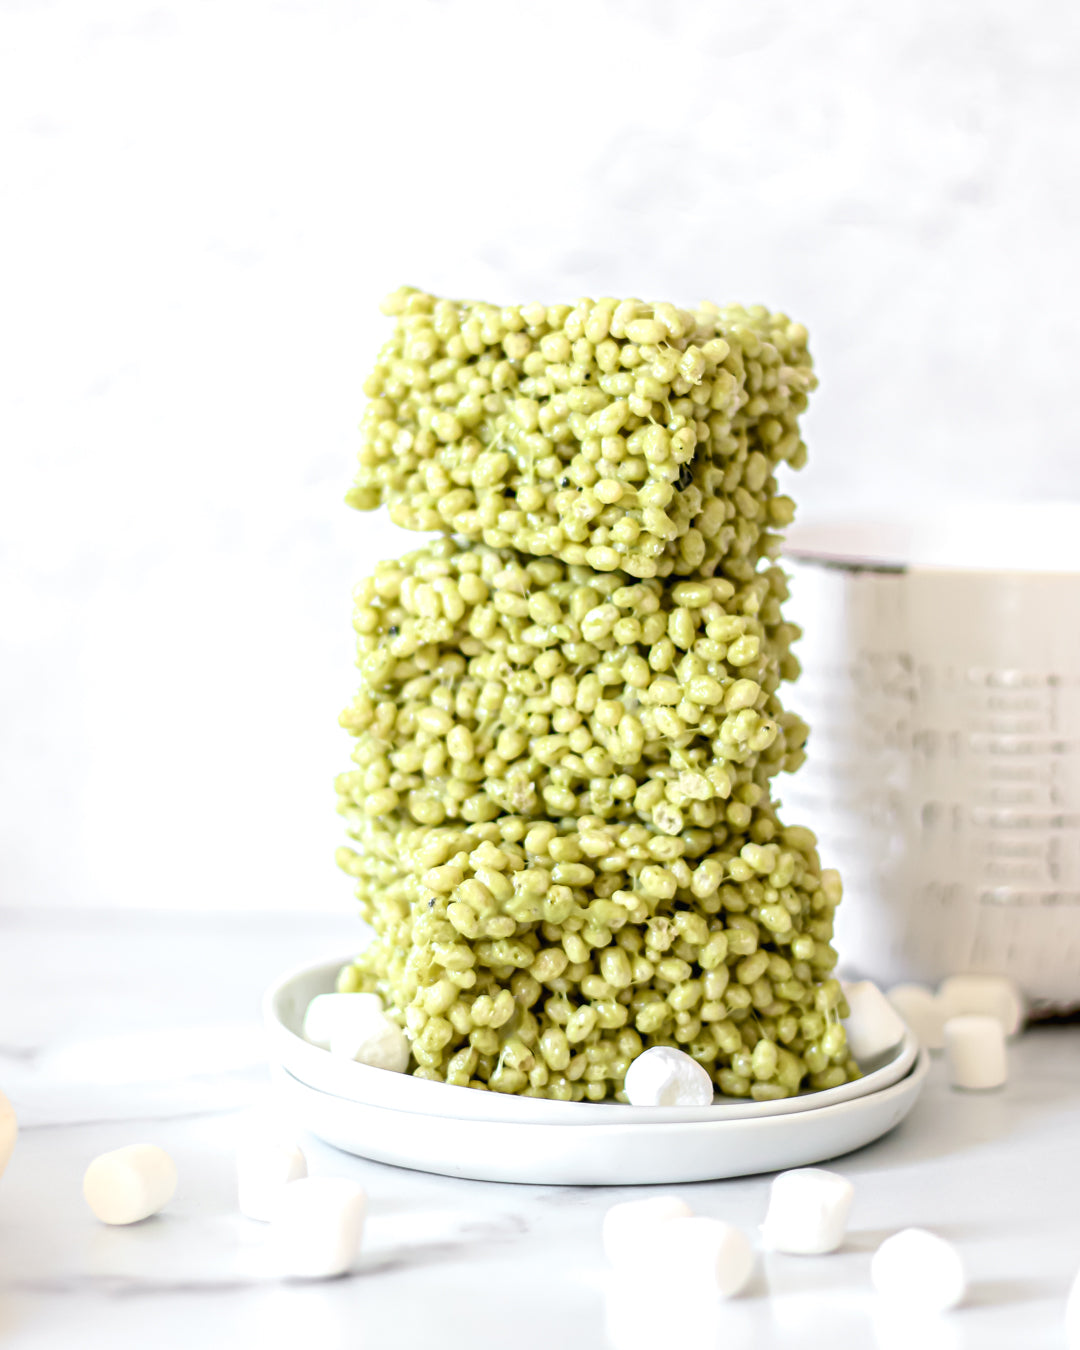 Photo of a stack of 3 rice krispies treats squares made with green tea powder, set on a white plate, with a few small marshmallows strewn about, all on a white background